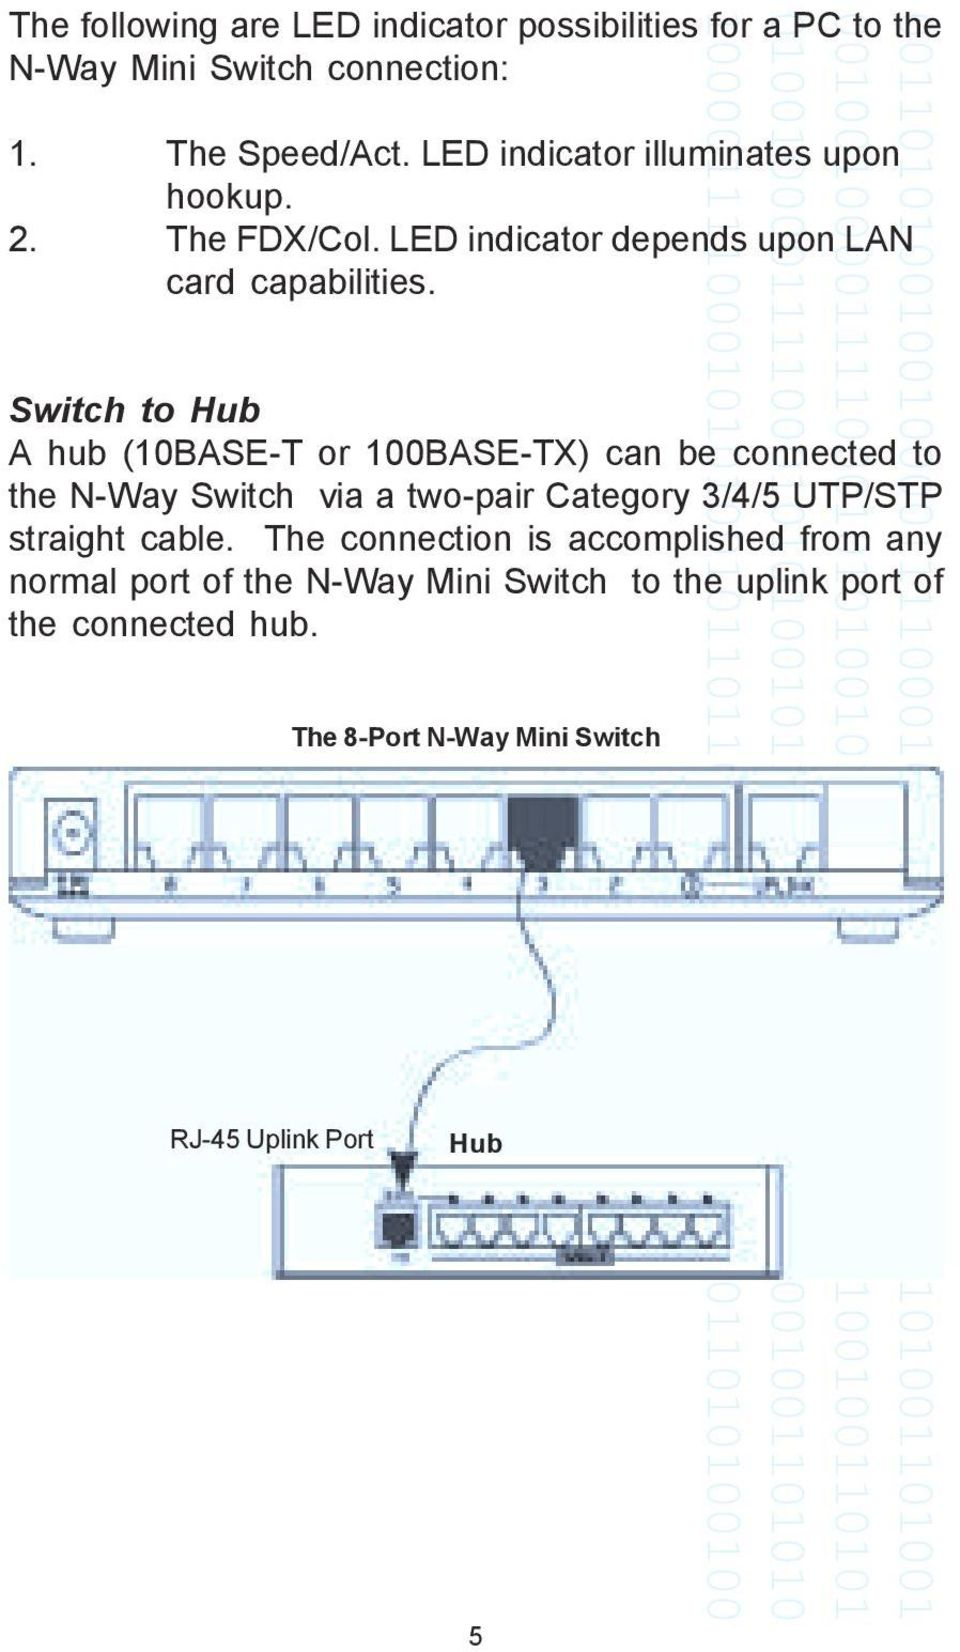 Switch to Hub A hub (10BASE-T or 100BASE-TX) can be connected to the N-Way Switch via a two-pair Category 3/4/5 UTP/STP straight